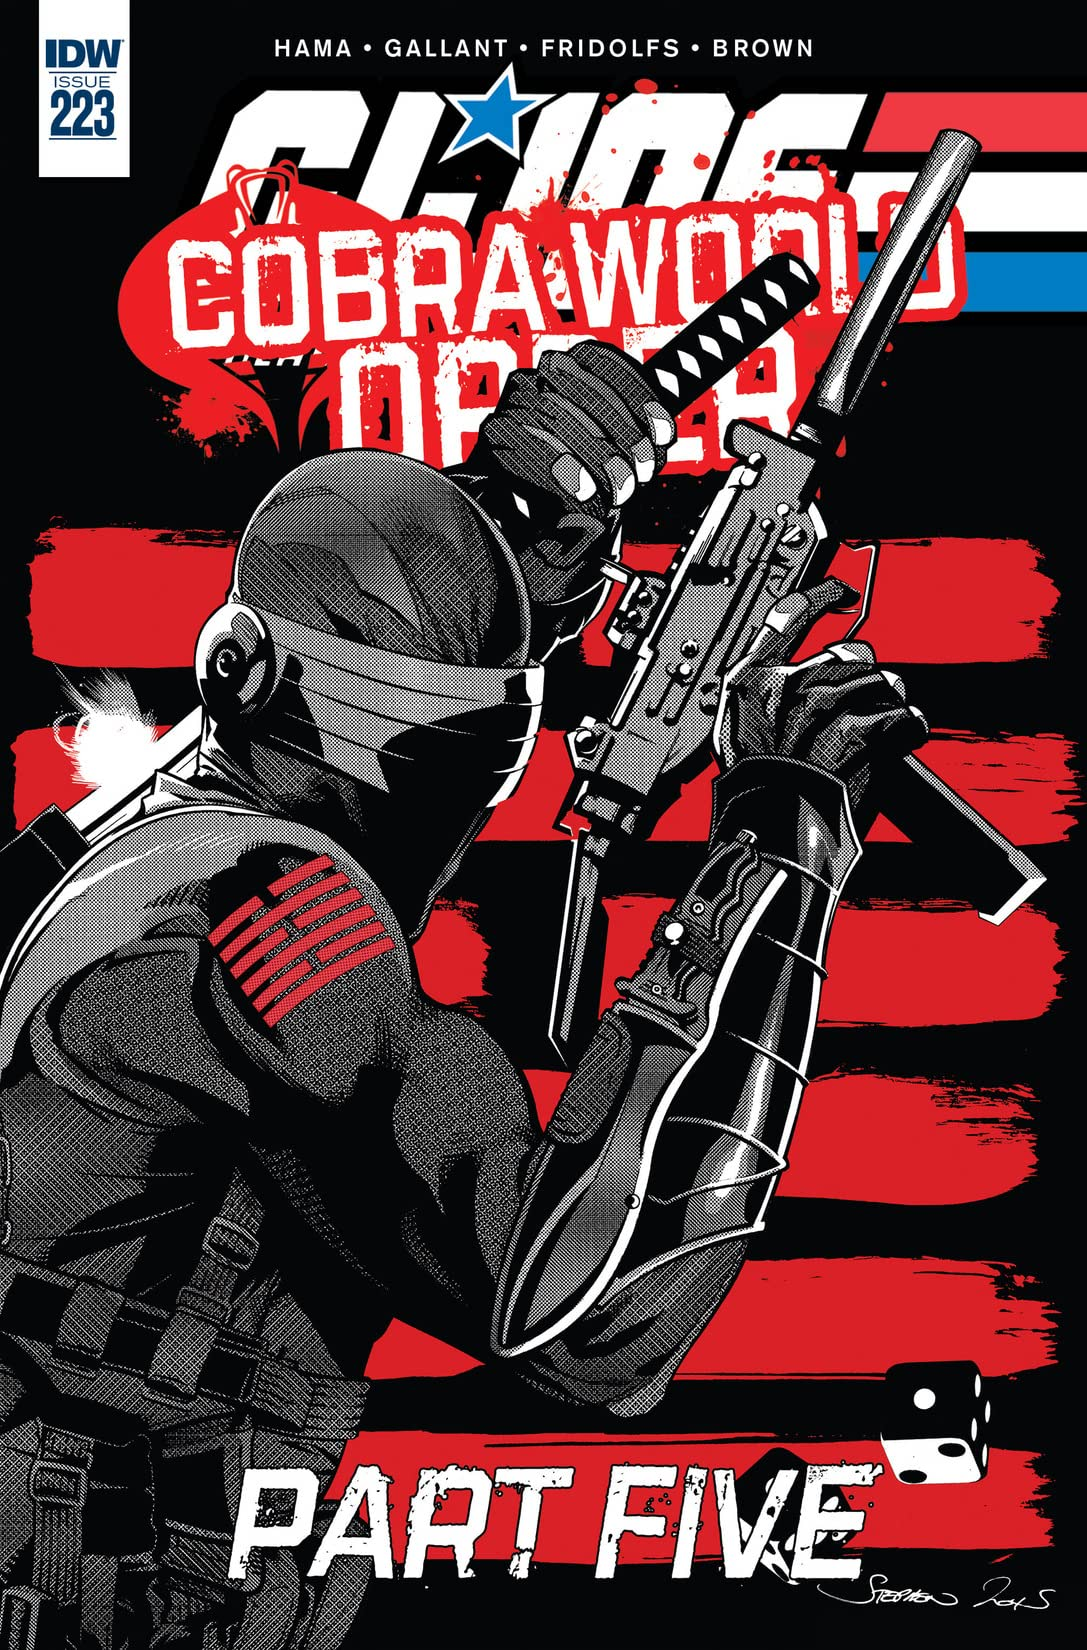 G.I. Joe: A Real American Hero #223